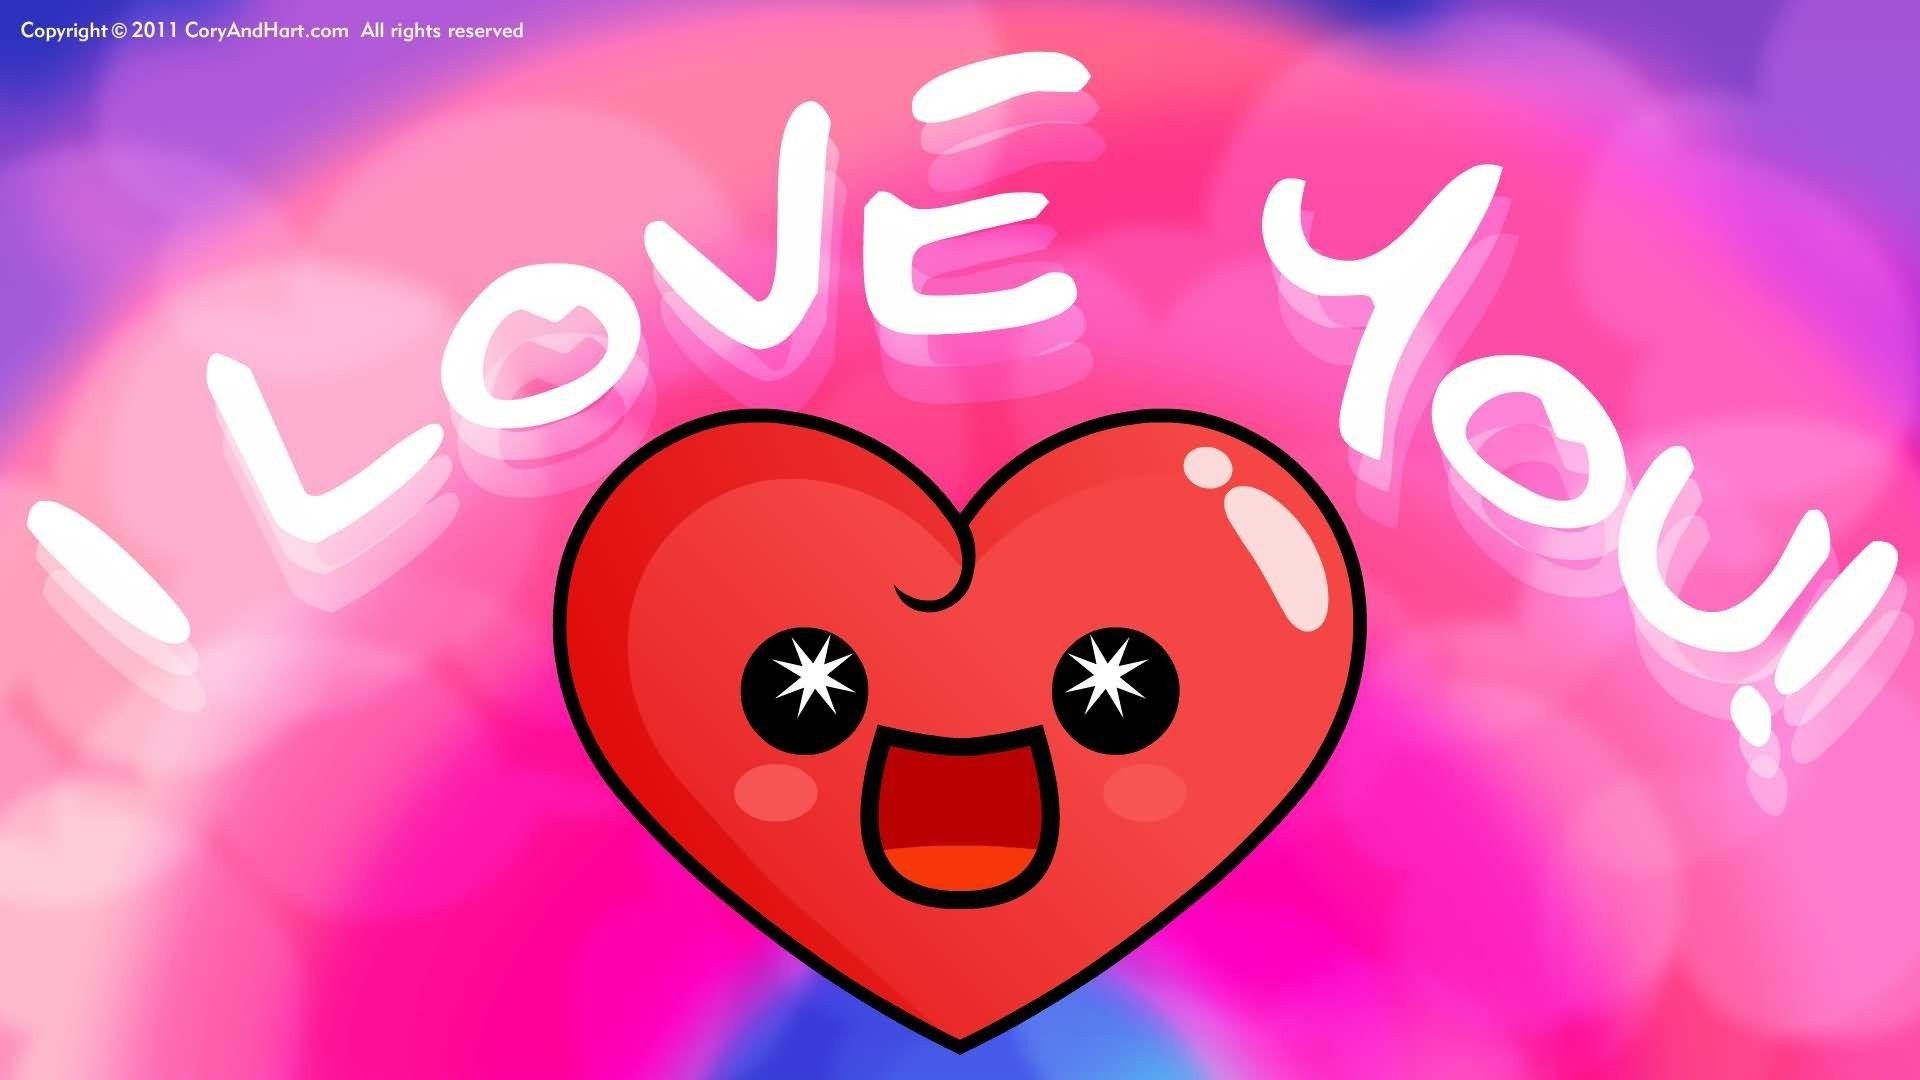 Love Animation Wallpapers - Wallpaper Cave